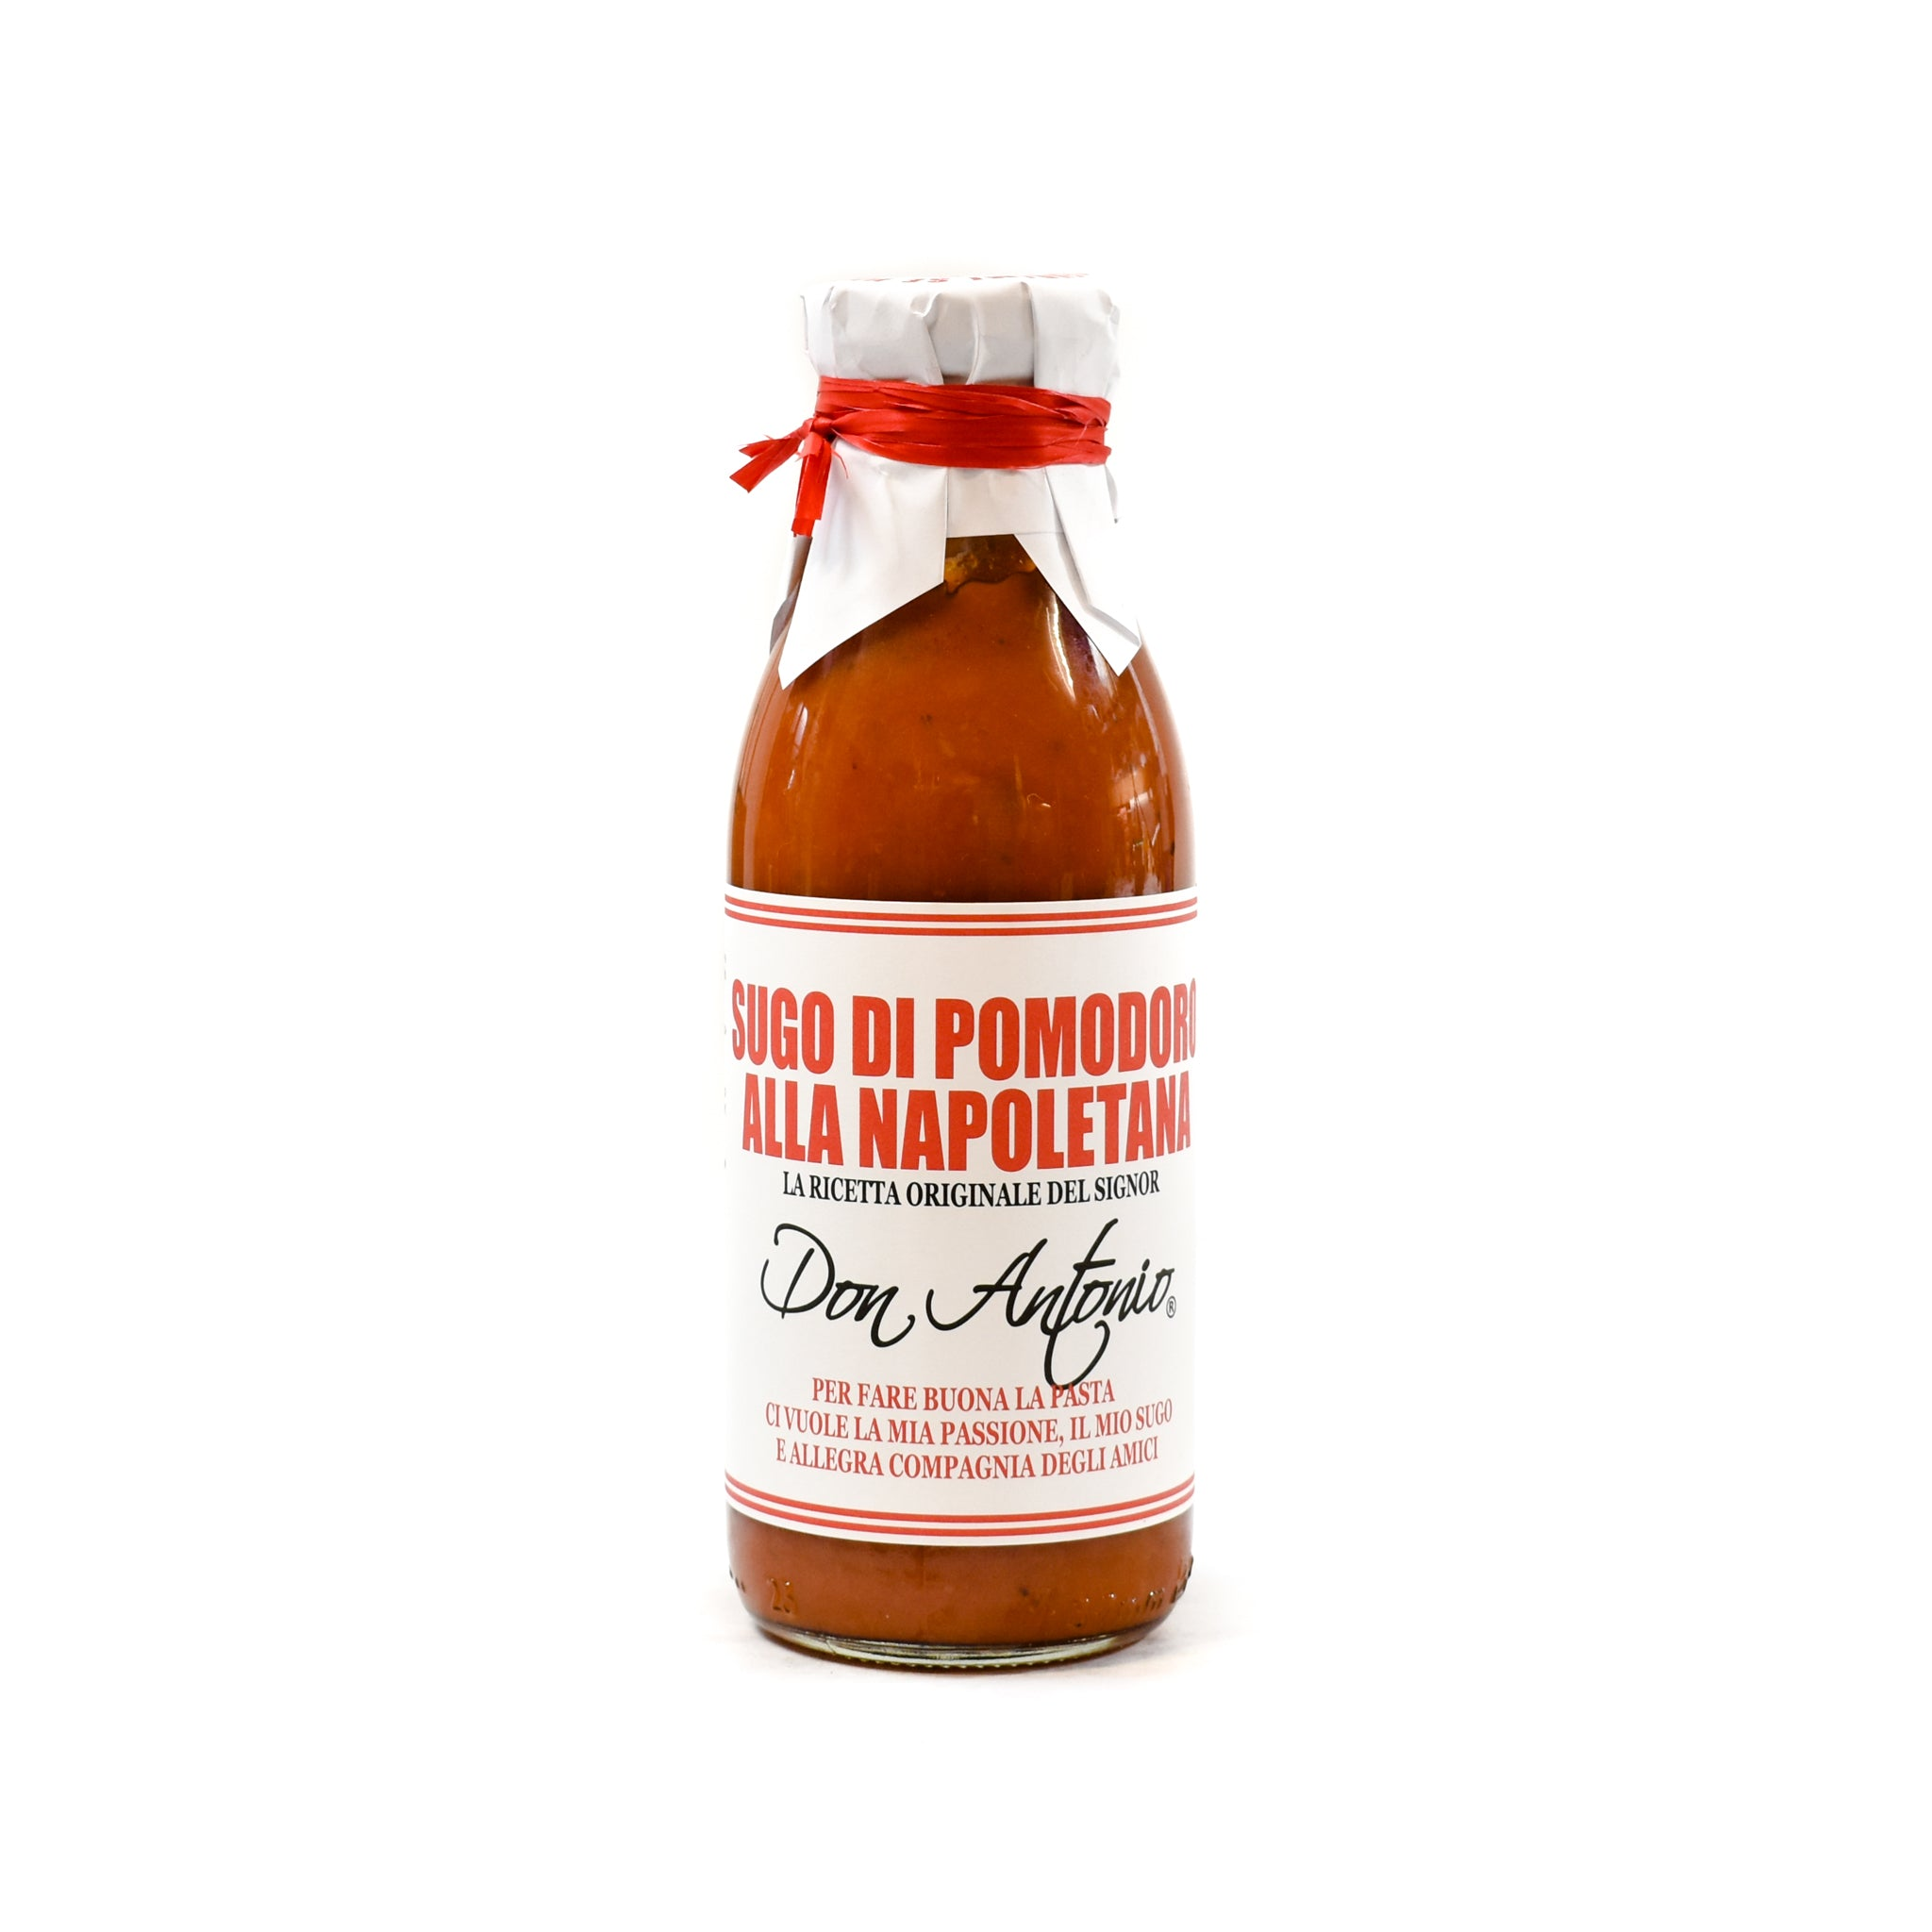 Don Antonio Napoletana Sauce 500g Ingredients Sauces & Condiments Italian Food